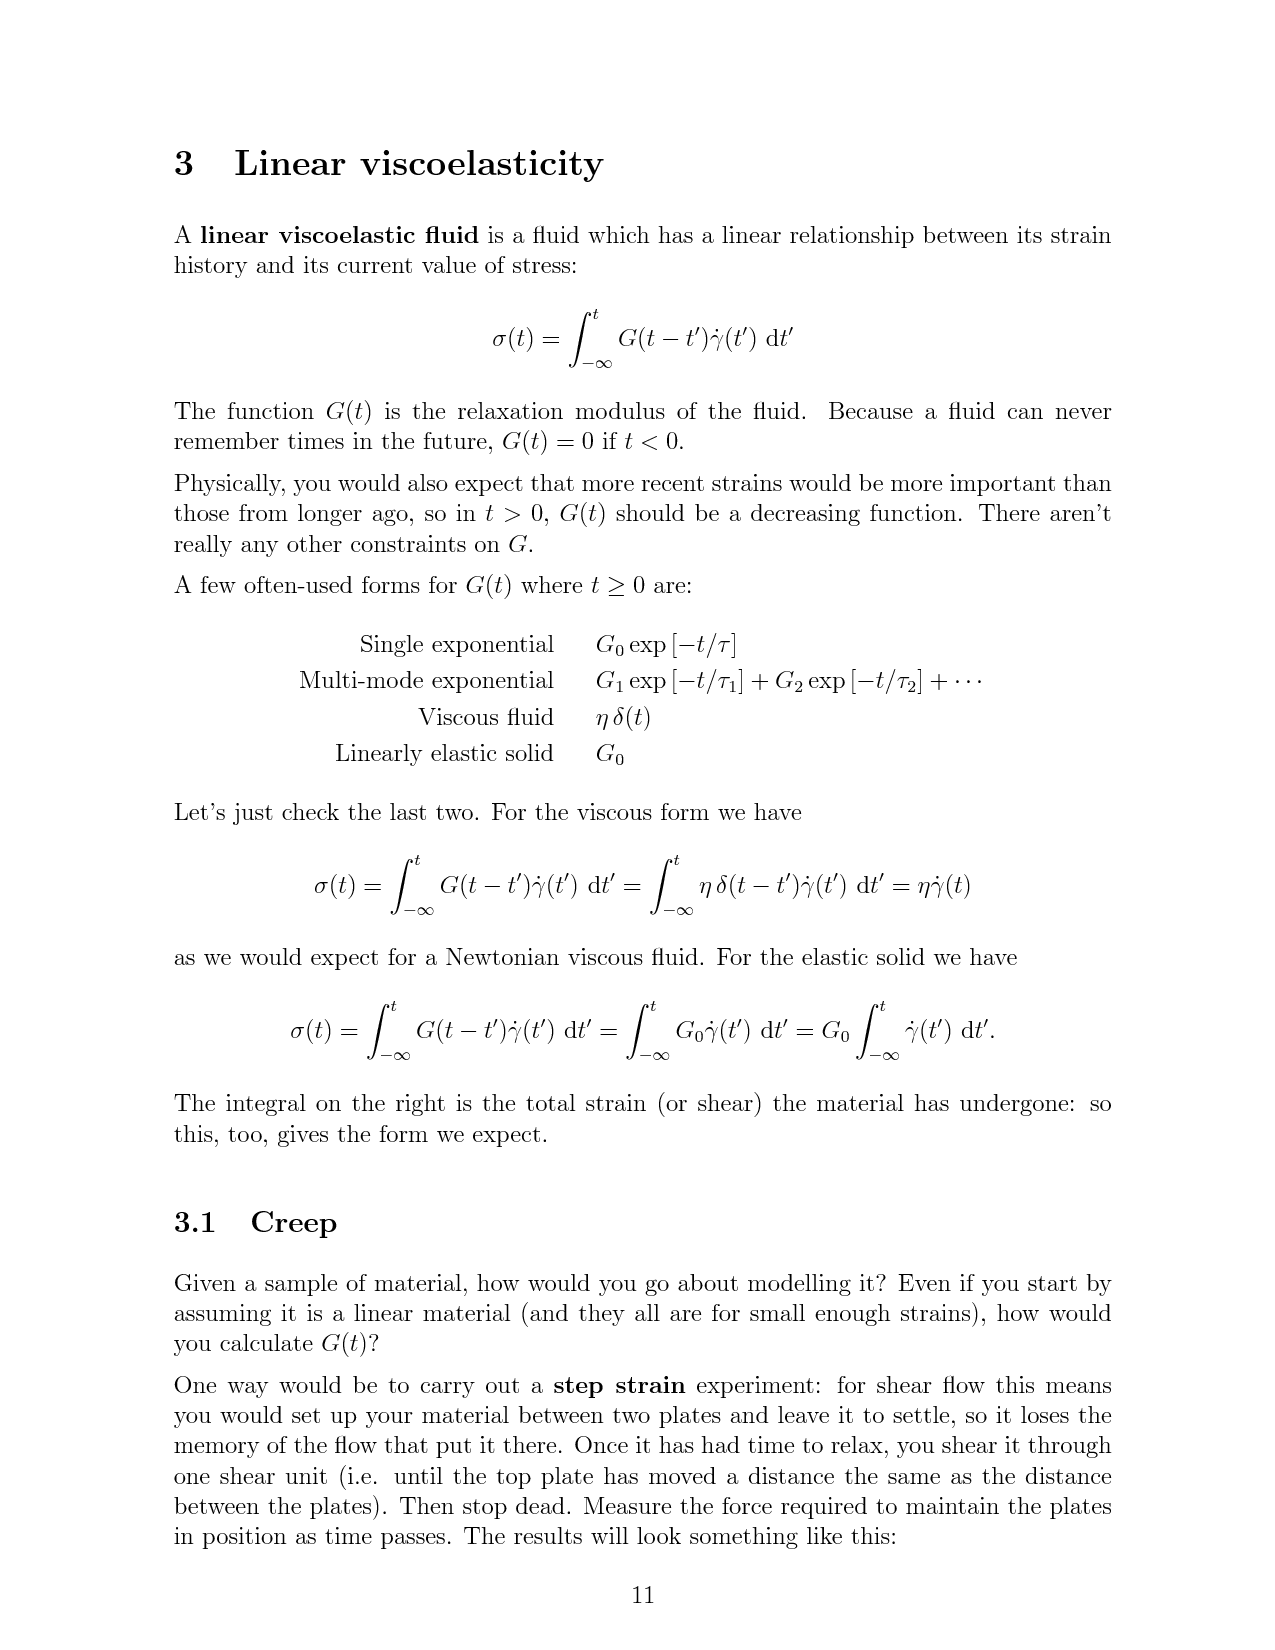 17 Best Images of Linear Function Word Problems Worksheet  Algebra Equations Word Problems